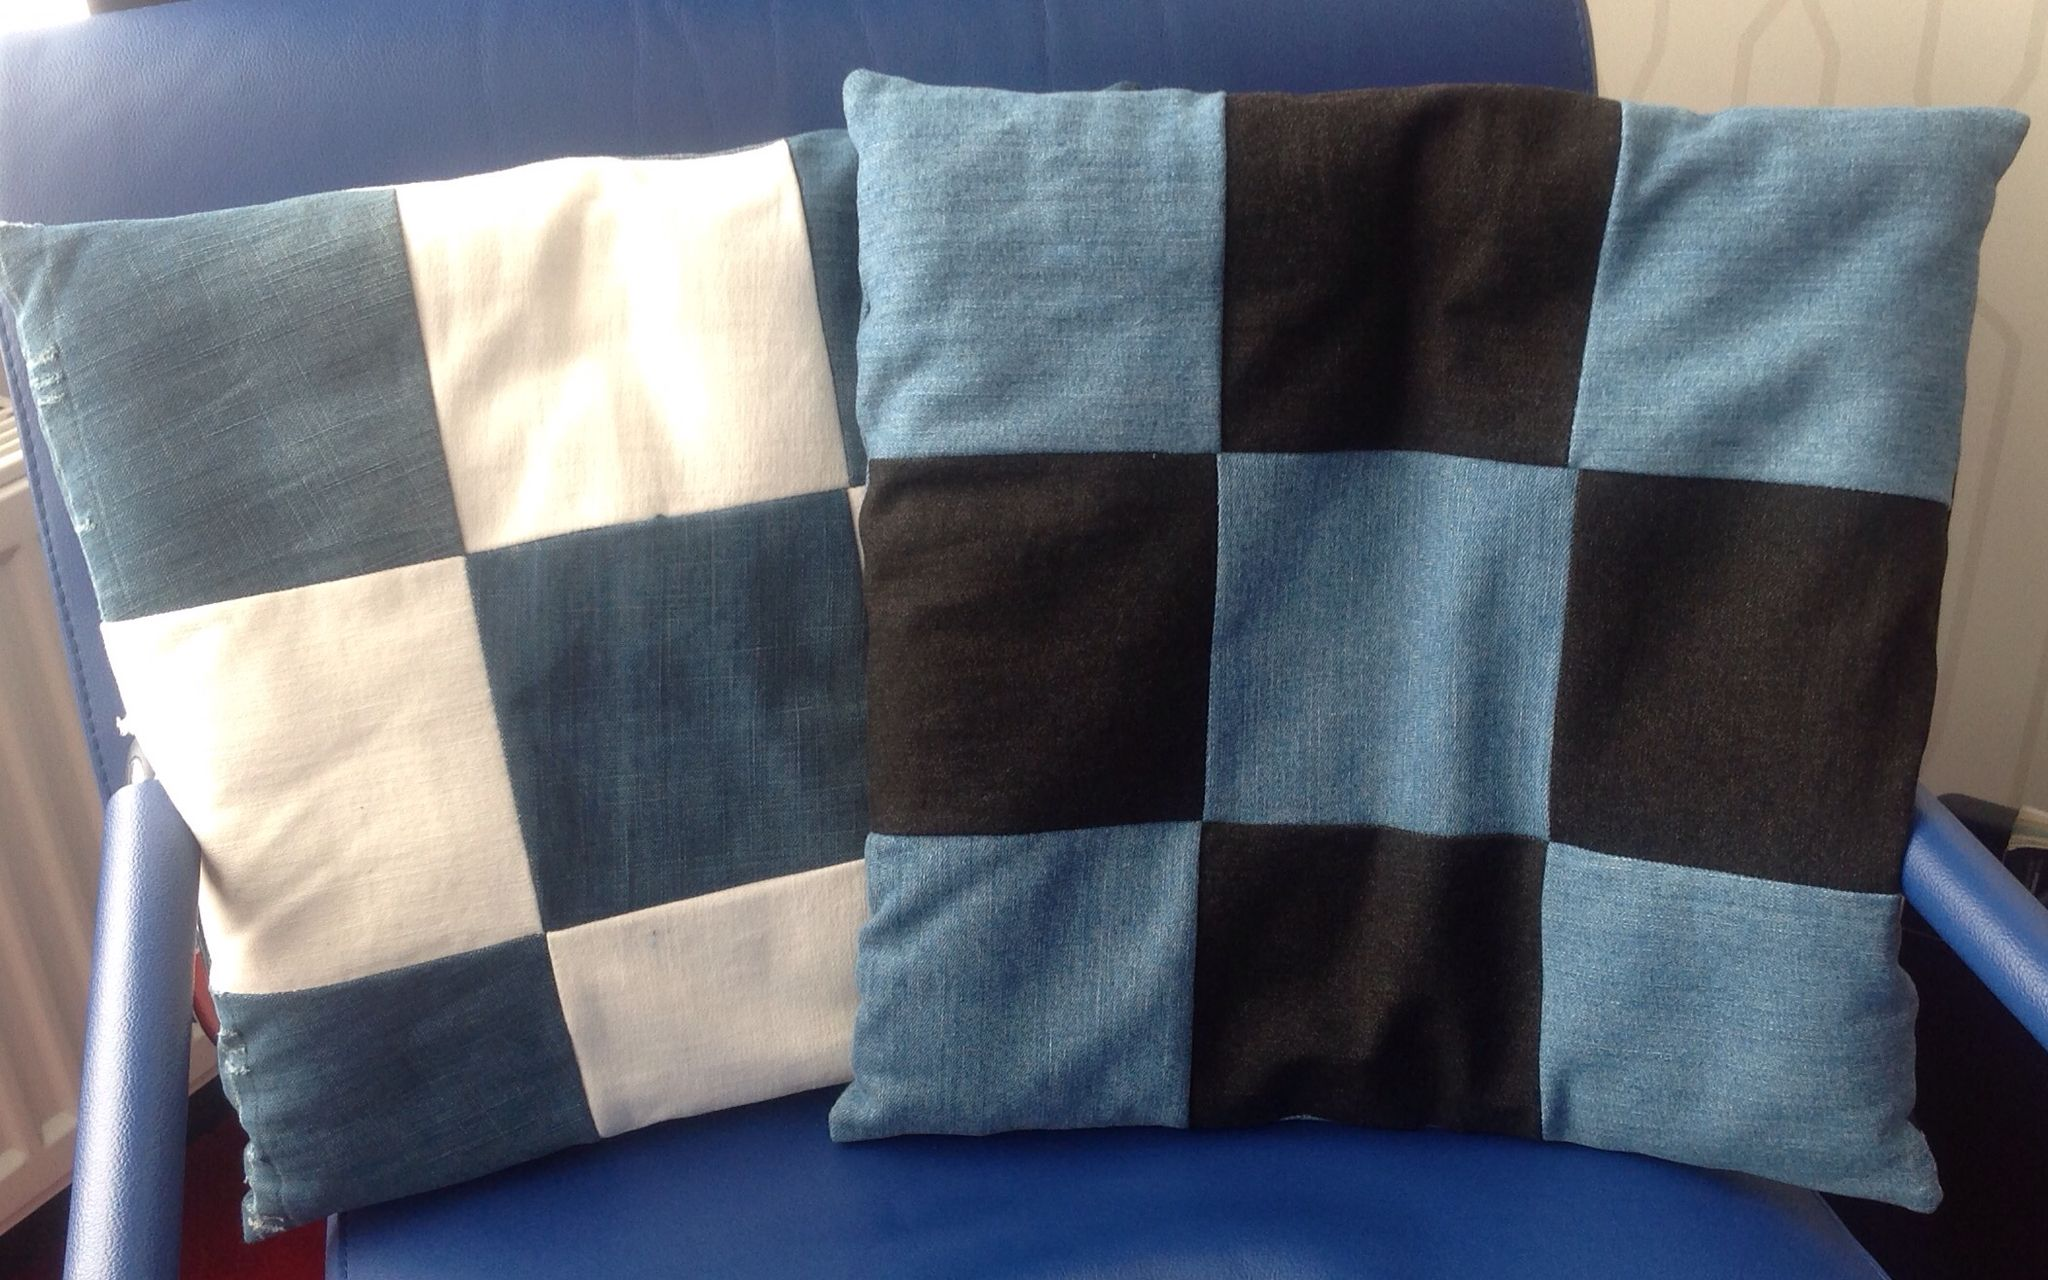 Jeans patchwork cushions.